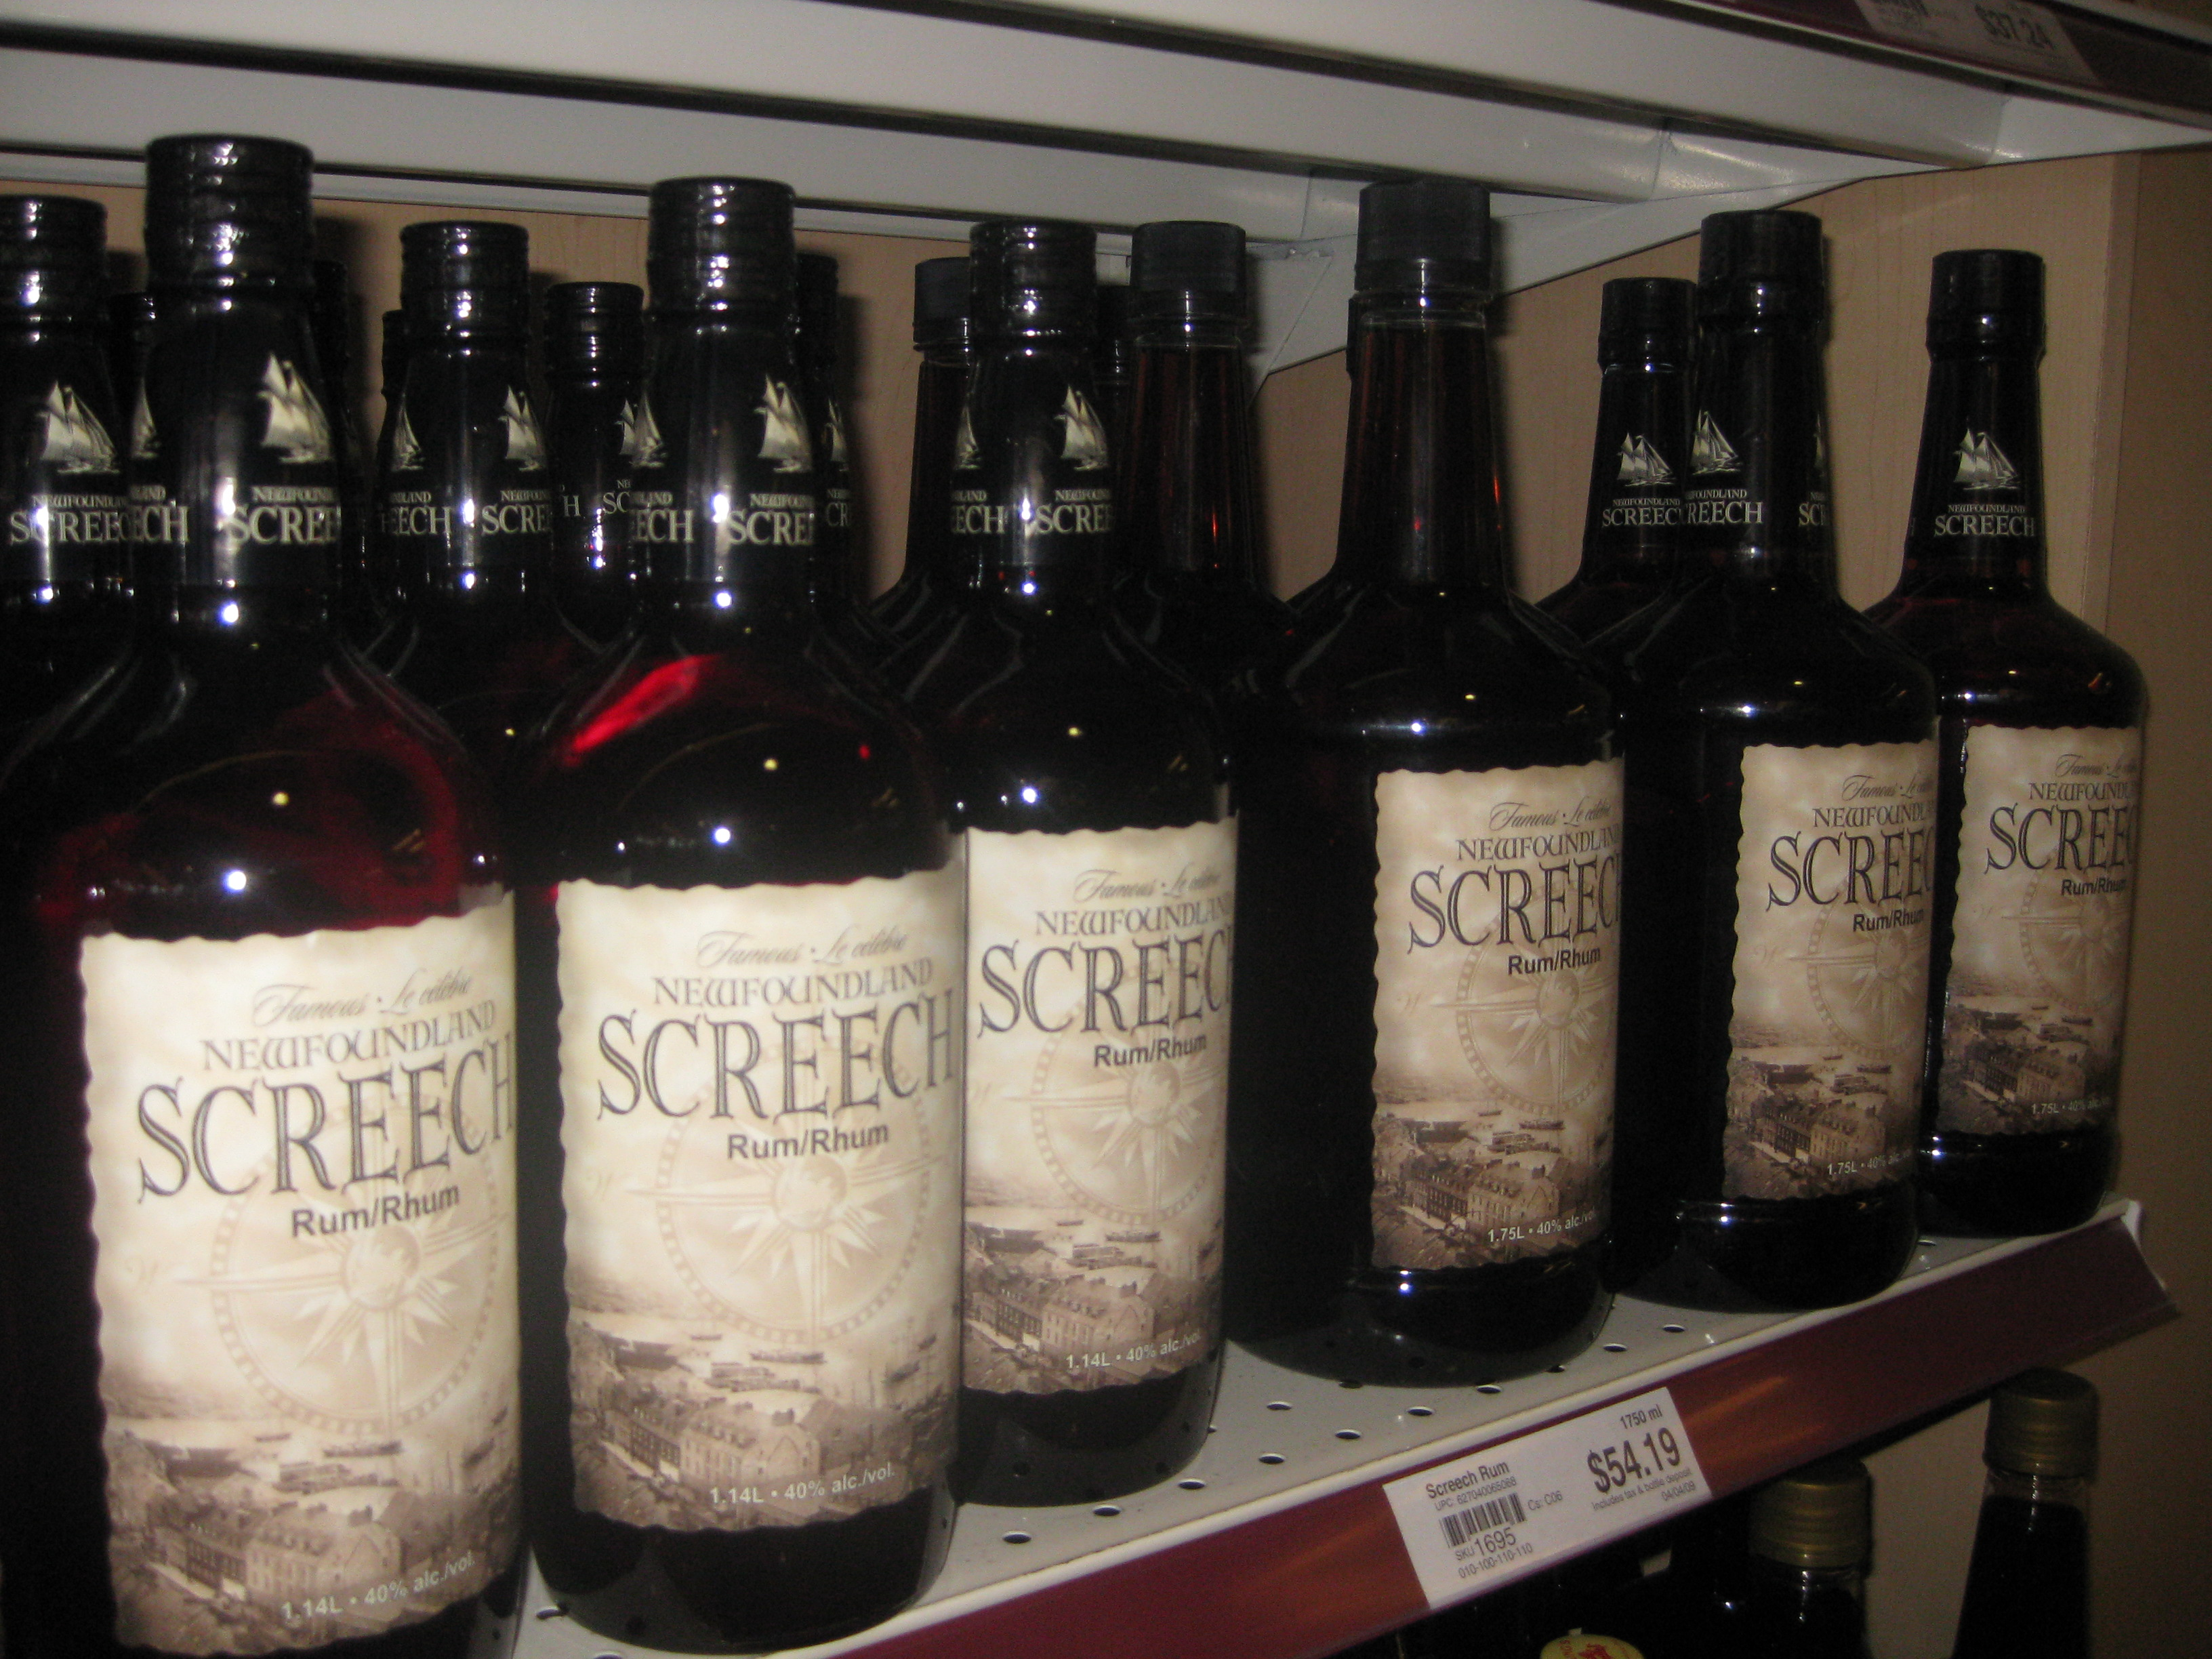 Newfoundland Screech, on shelves (17 August 2009)